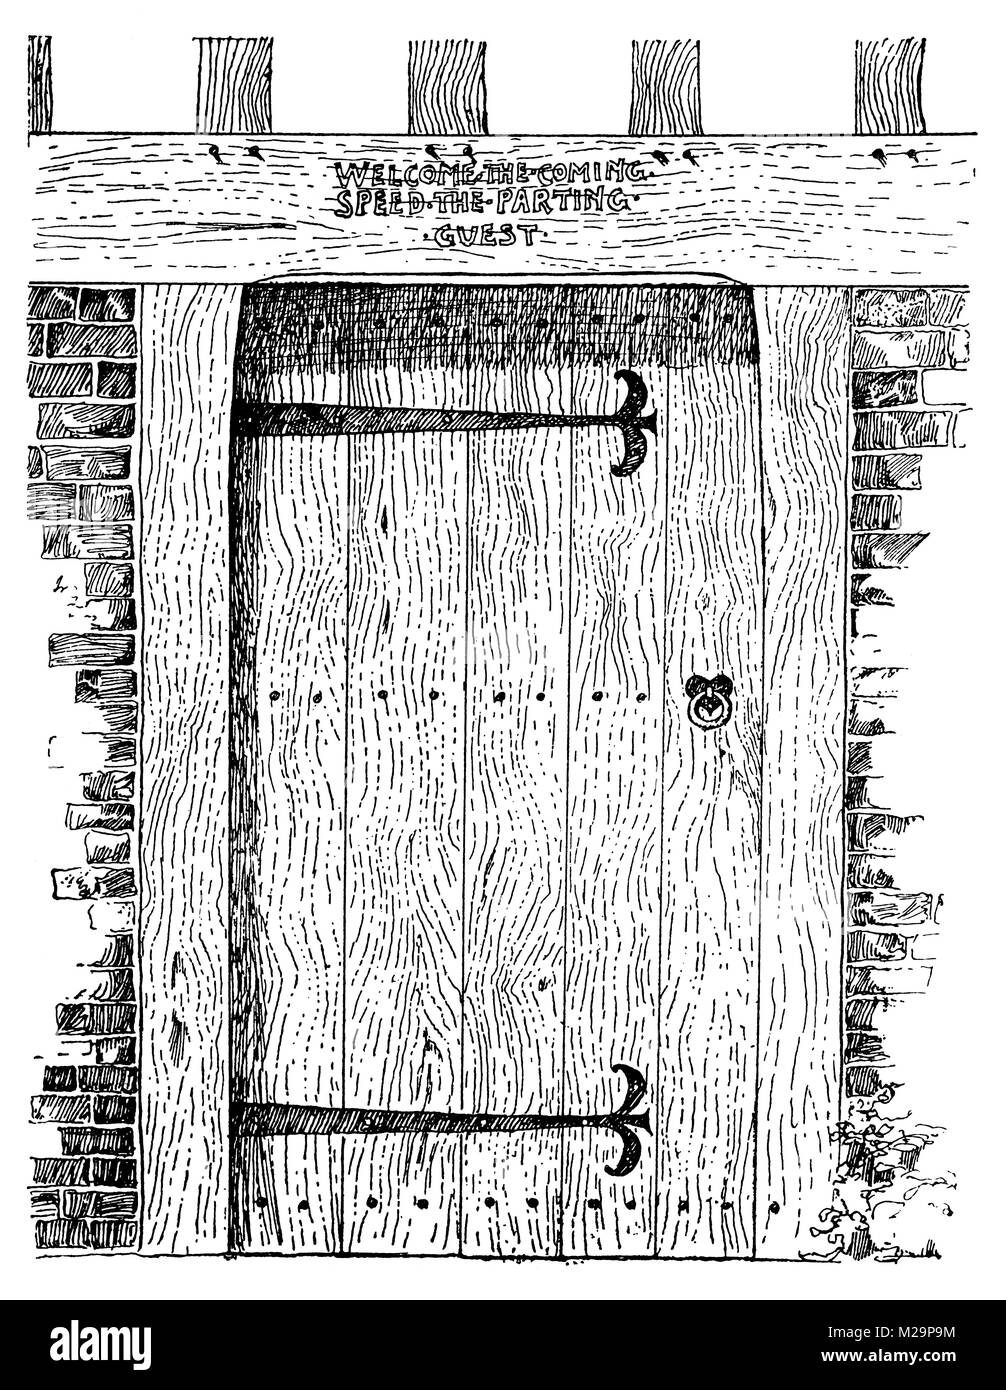 wooden front door, arts and crafts line illustration by Architect and artist Mackay Hugh Baillie Scott from 1895 - Stock Image